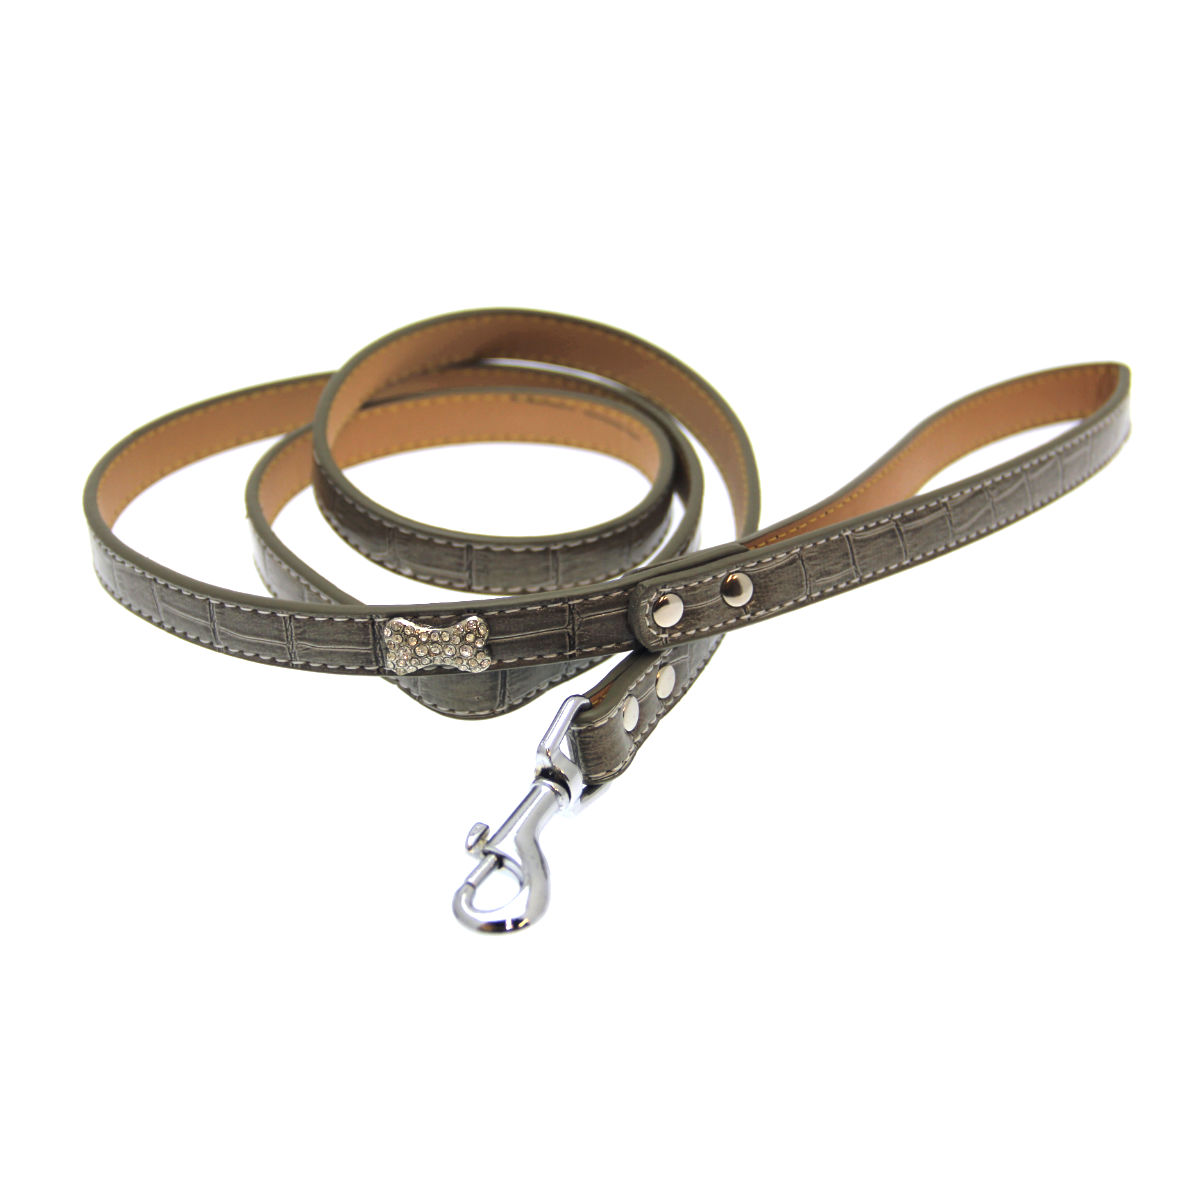 Crystal Bone Leather Dog Leash - Gray